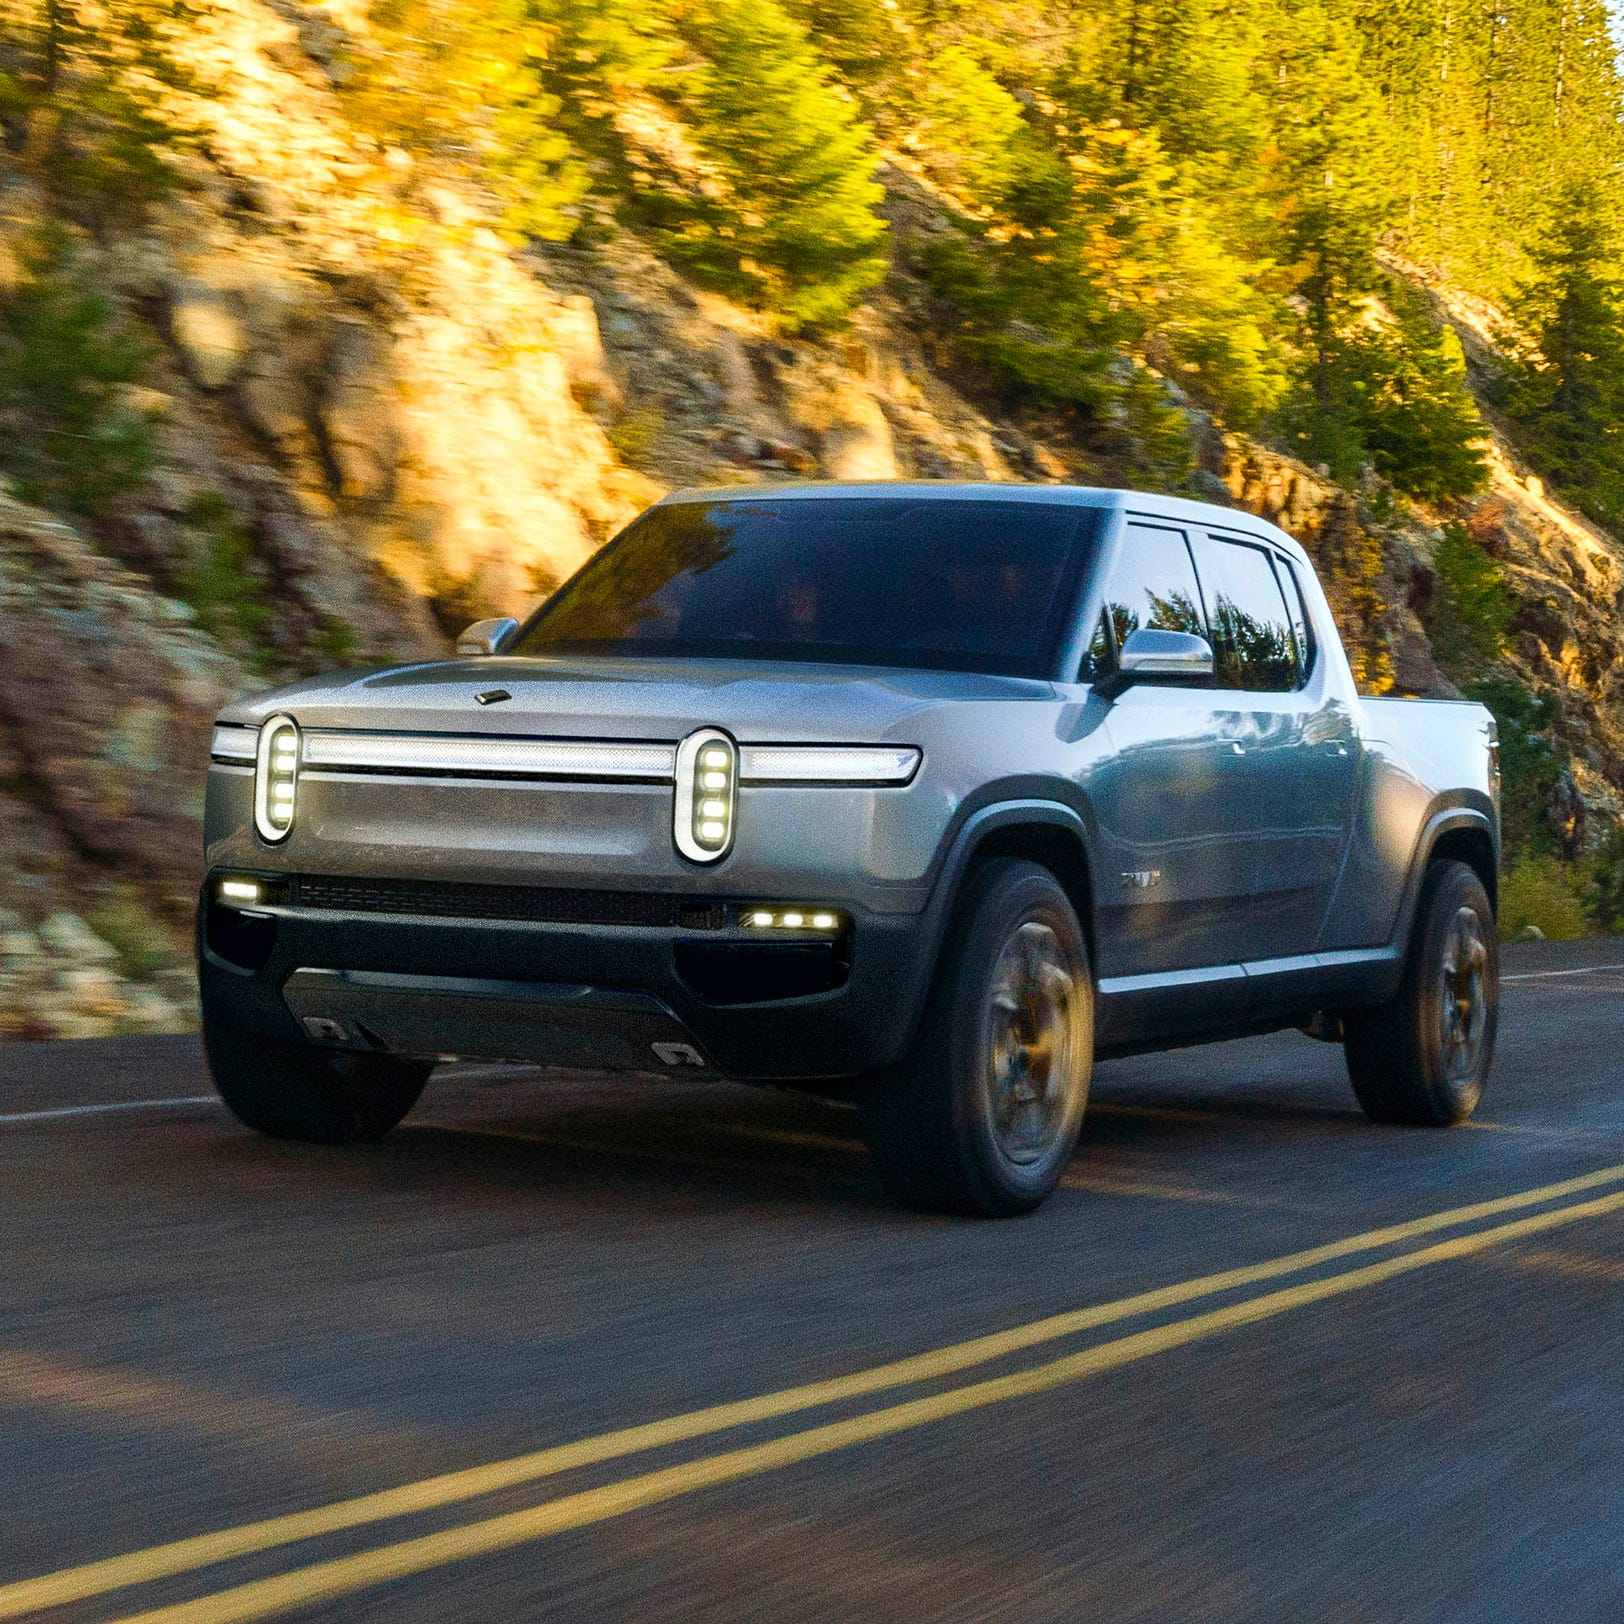 Ford invests $500 million in Rivian, an electric truck startup in Michigan